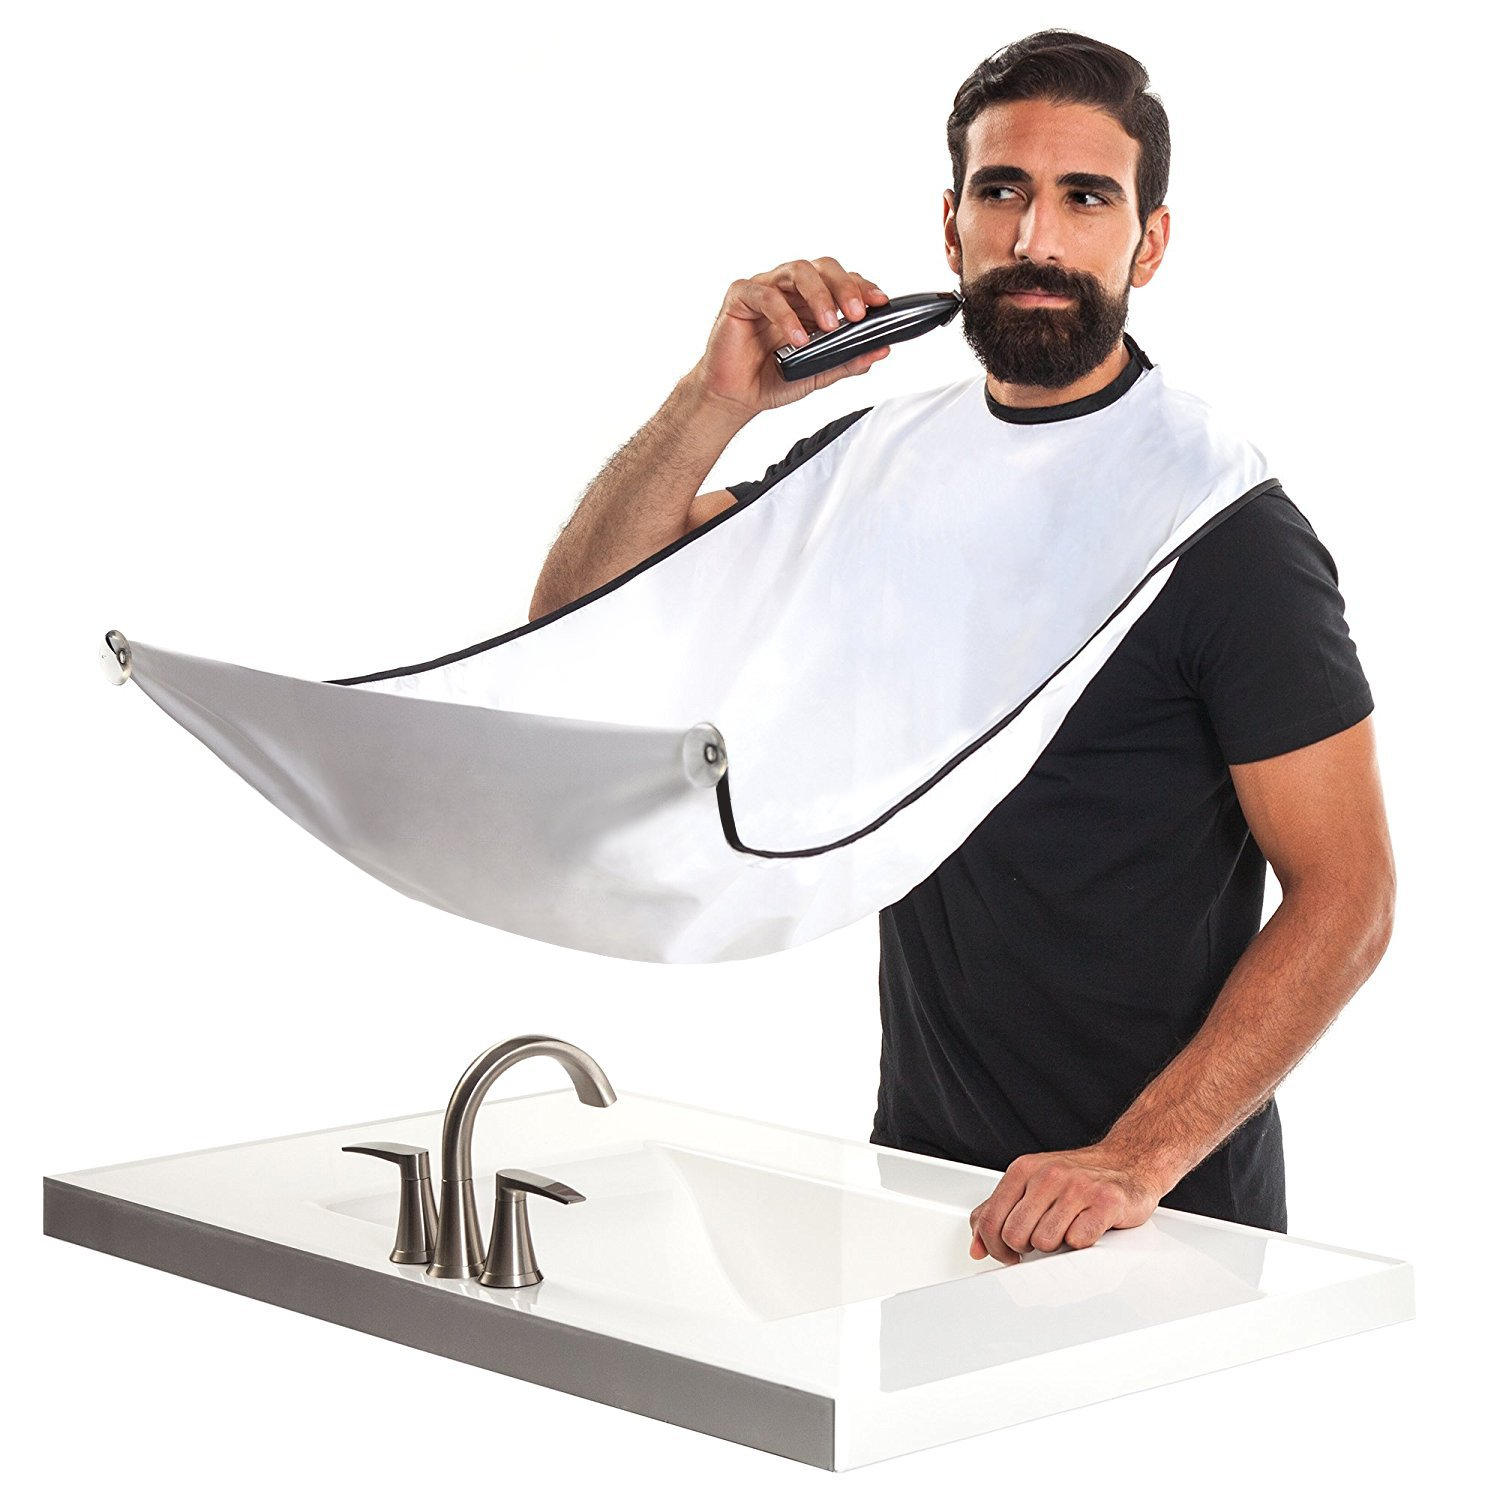 Elite99 Beard Apron, Beard Bib Catcher Hair Clippings Easy Clean for Beard Trimmings, Mustache and Hairs (White)